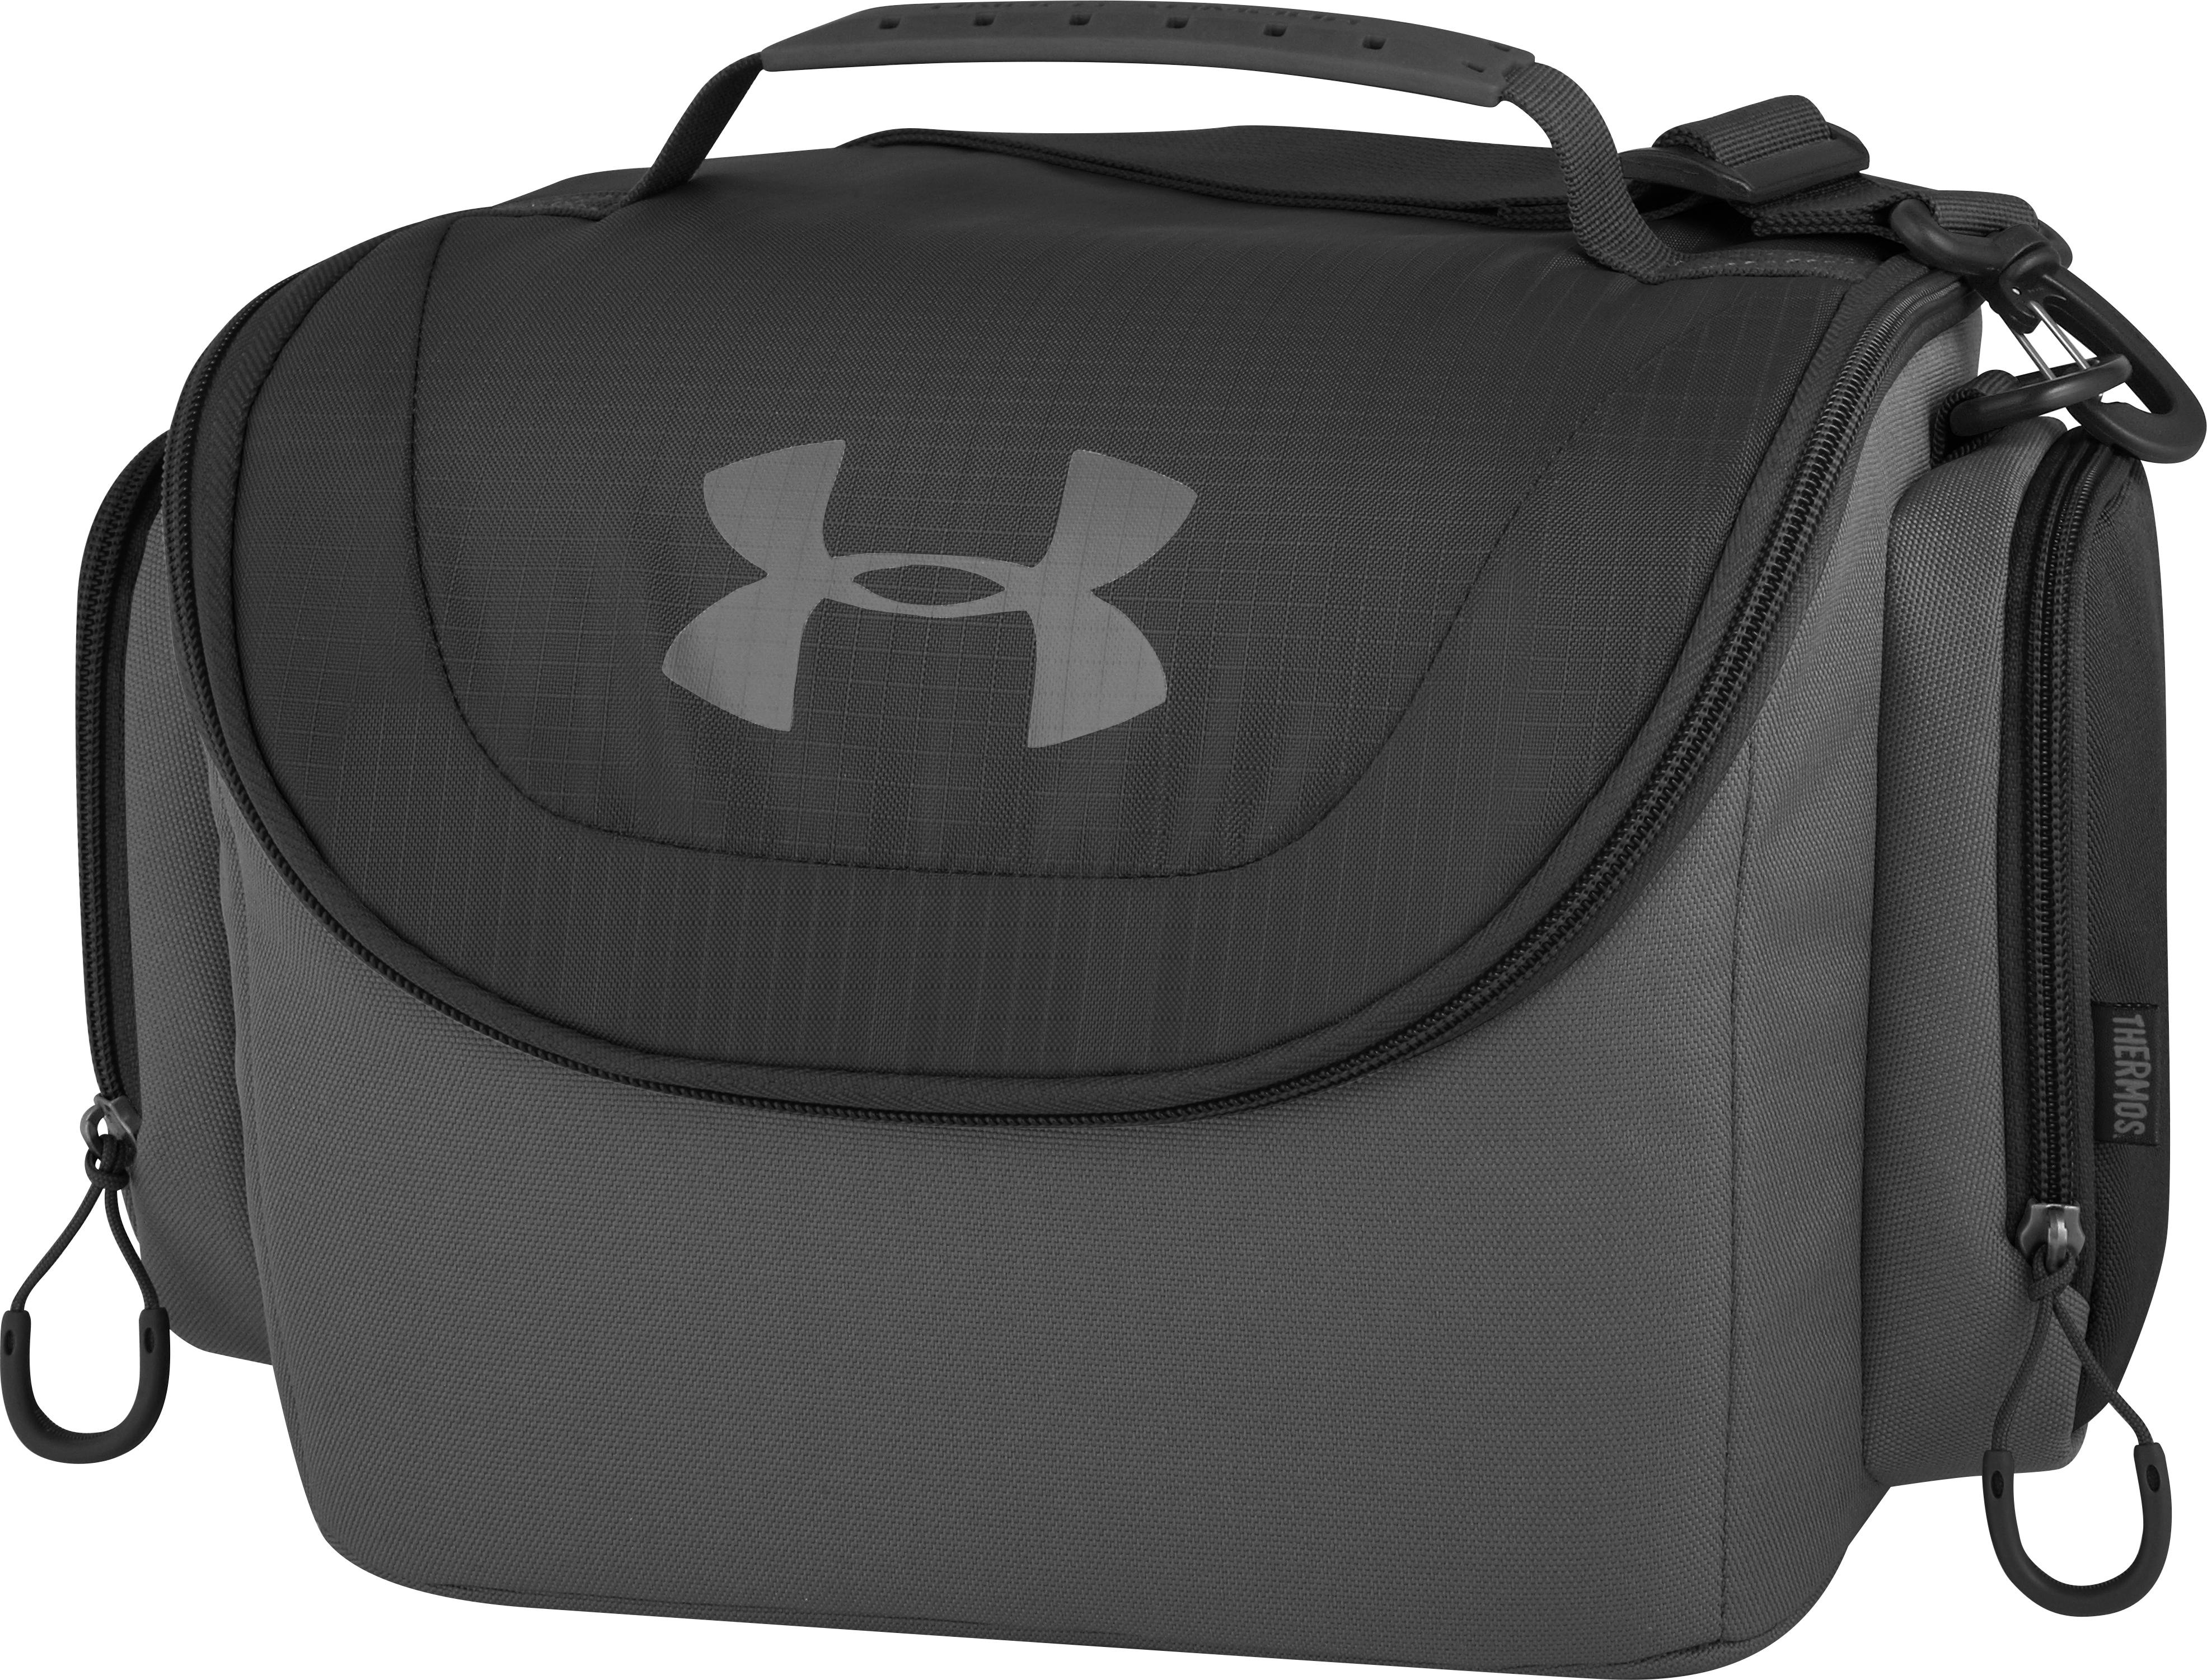 Under Armour - 12 Can Insulated Cooler Black/Graphite